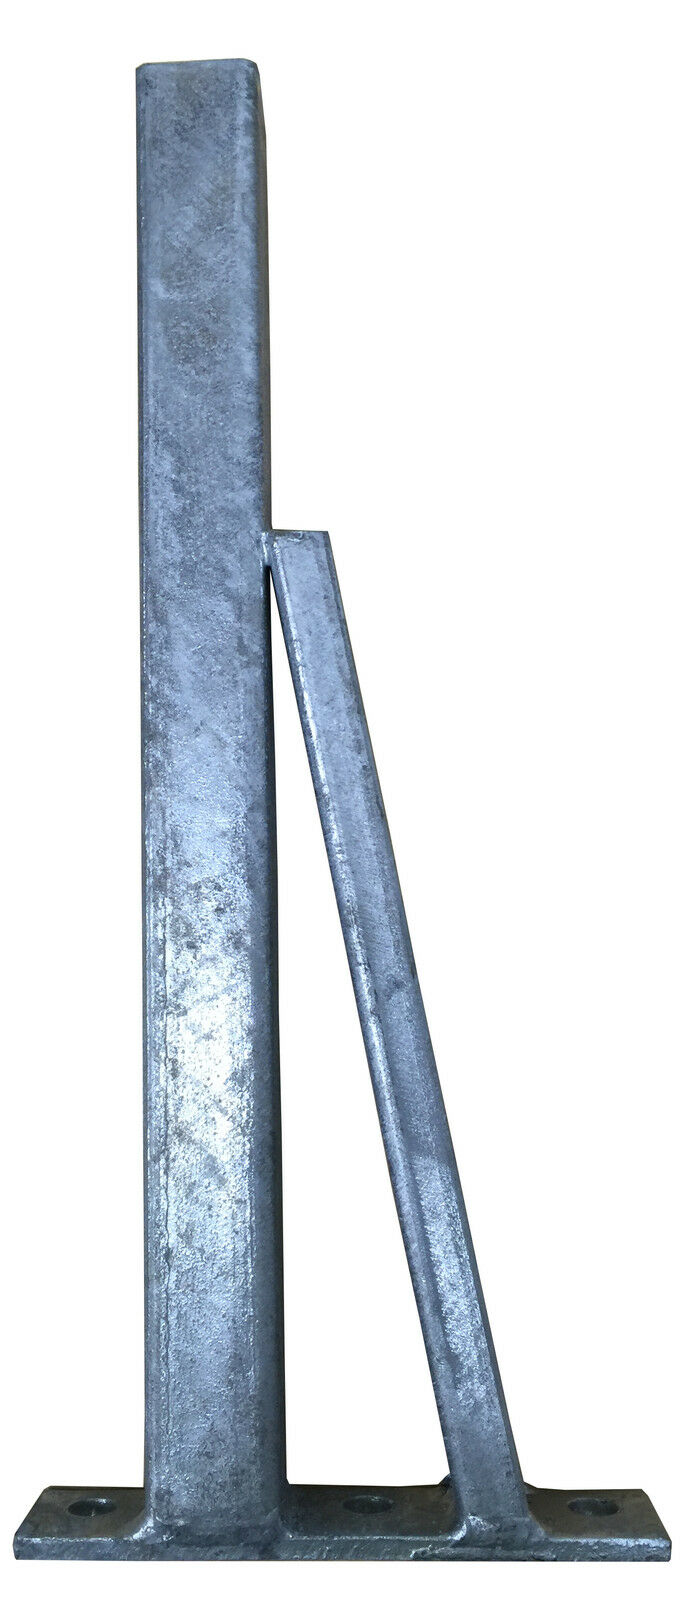 Aircon Galvanised Wall Bracket 1Pc Supports 200Kg 470Mm - Pair - Sp-900A